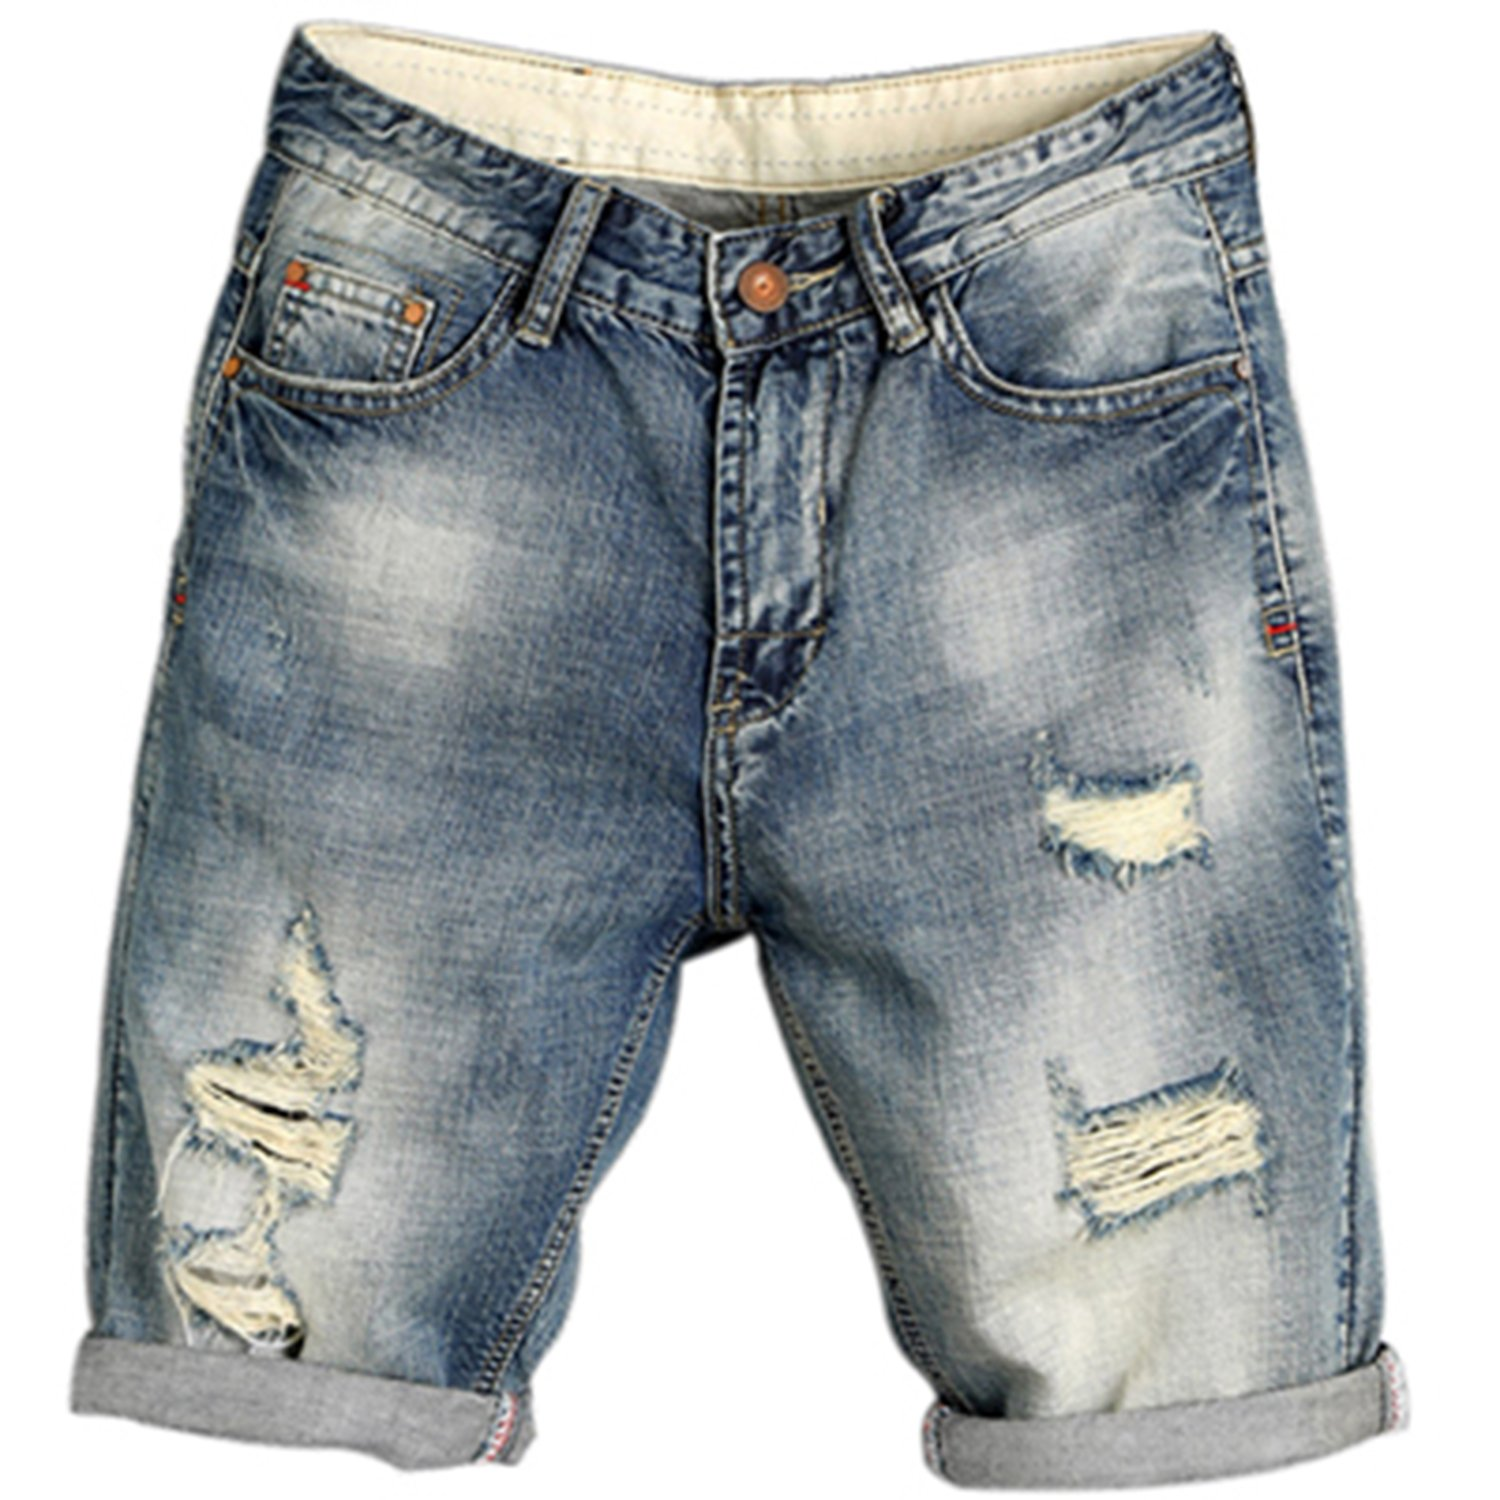 Yamed Gouache 2018 Summer Mens Denim Shorts Male Jeans Thin Fashion Brand Male Jeans